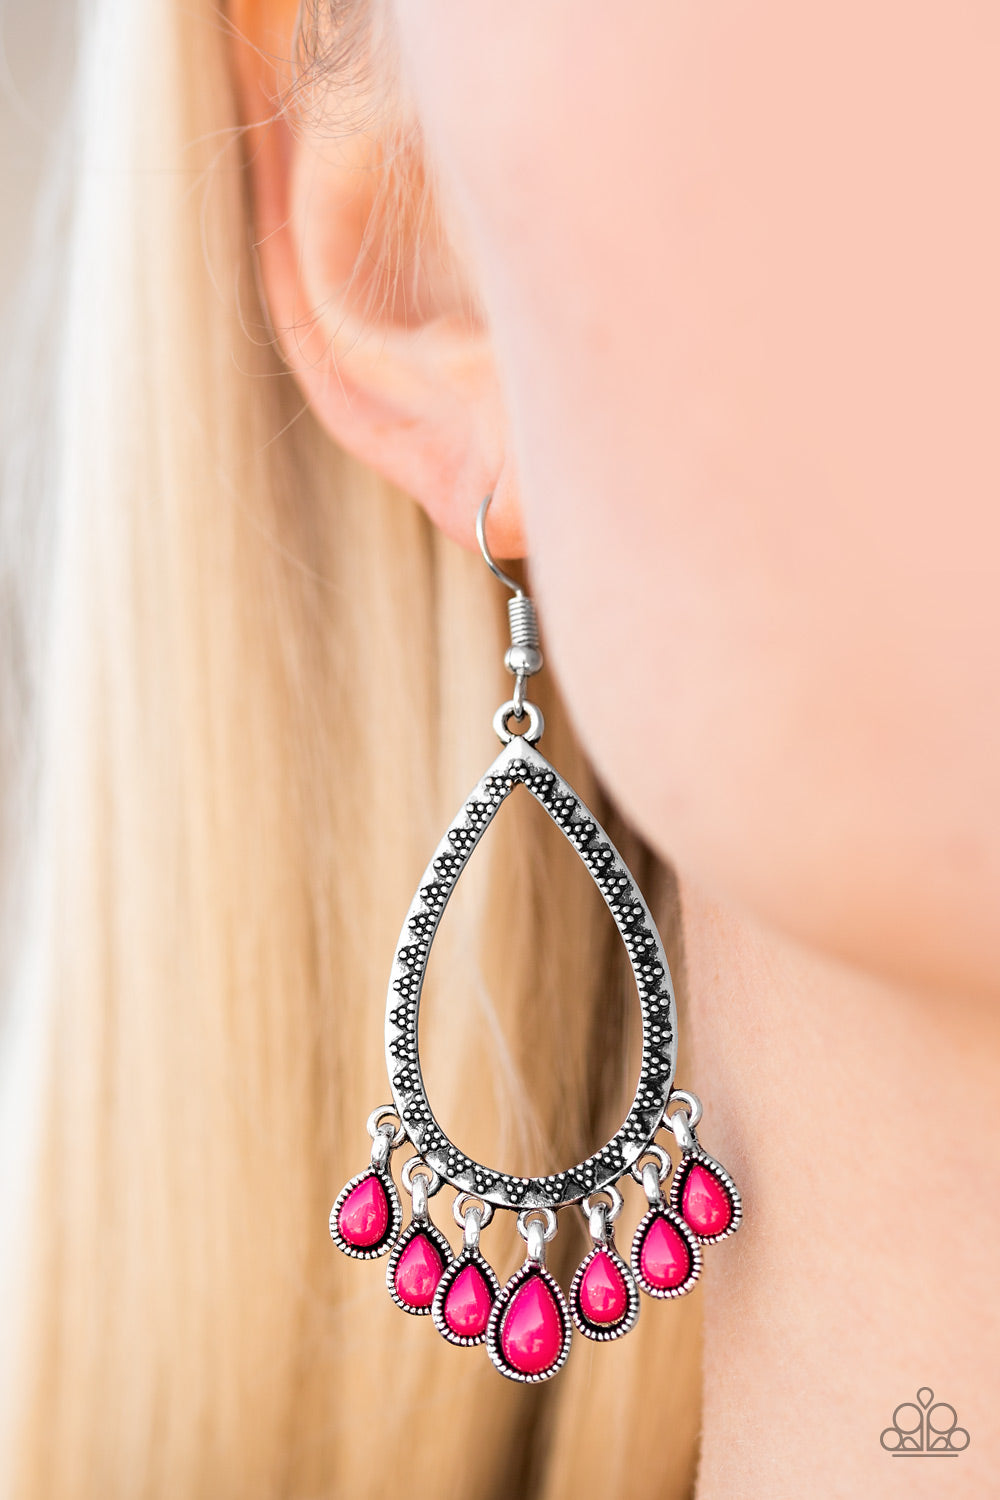 Radiant Bursts - Pink Earrings - Paparazzi Accessories